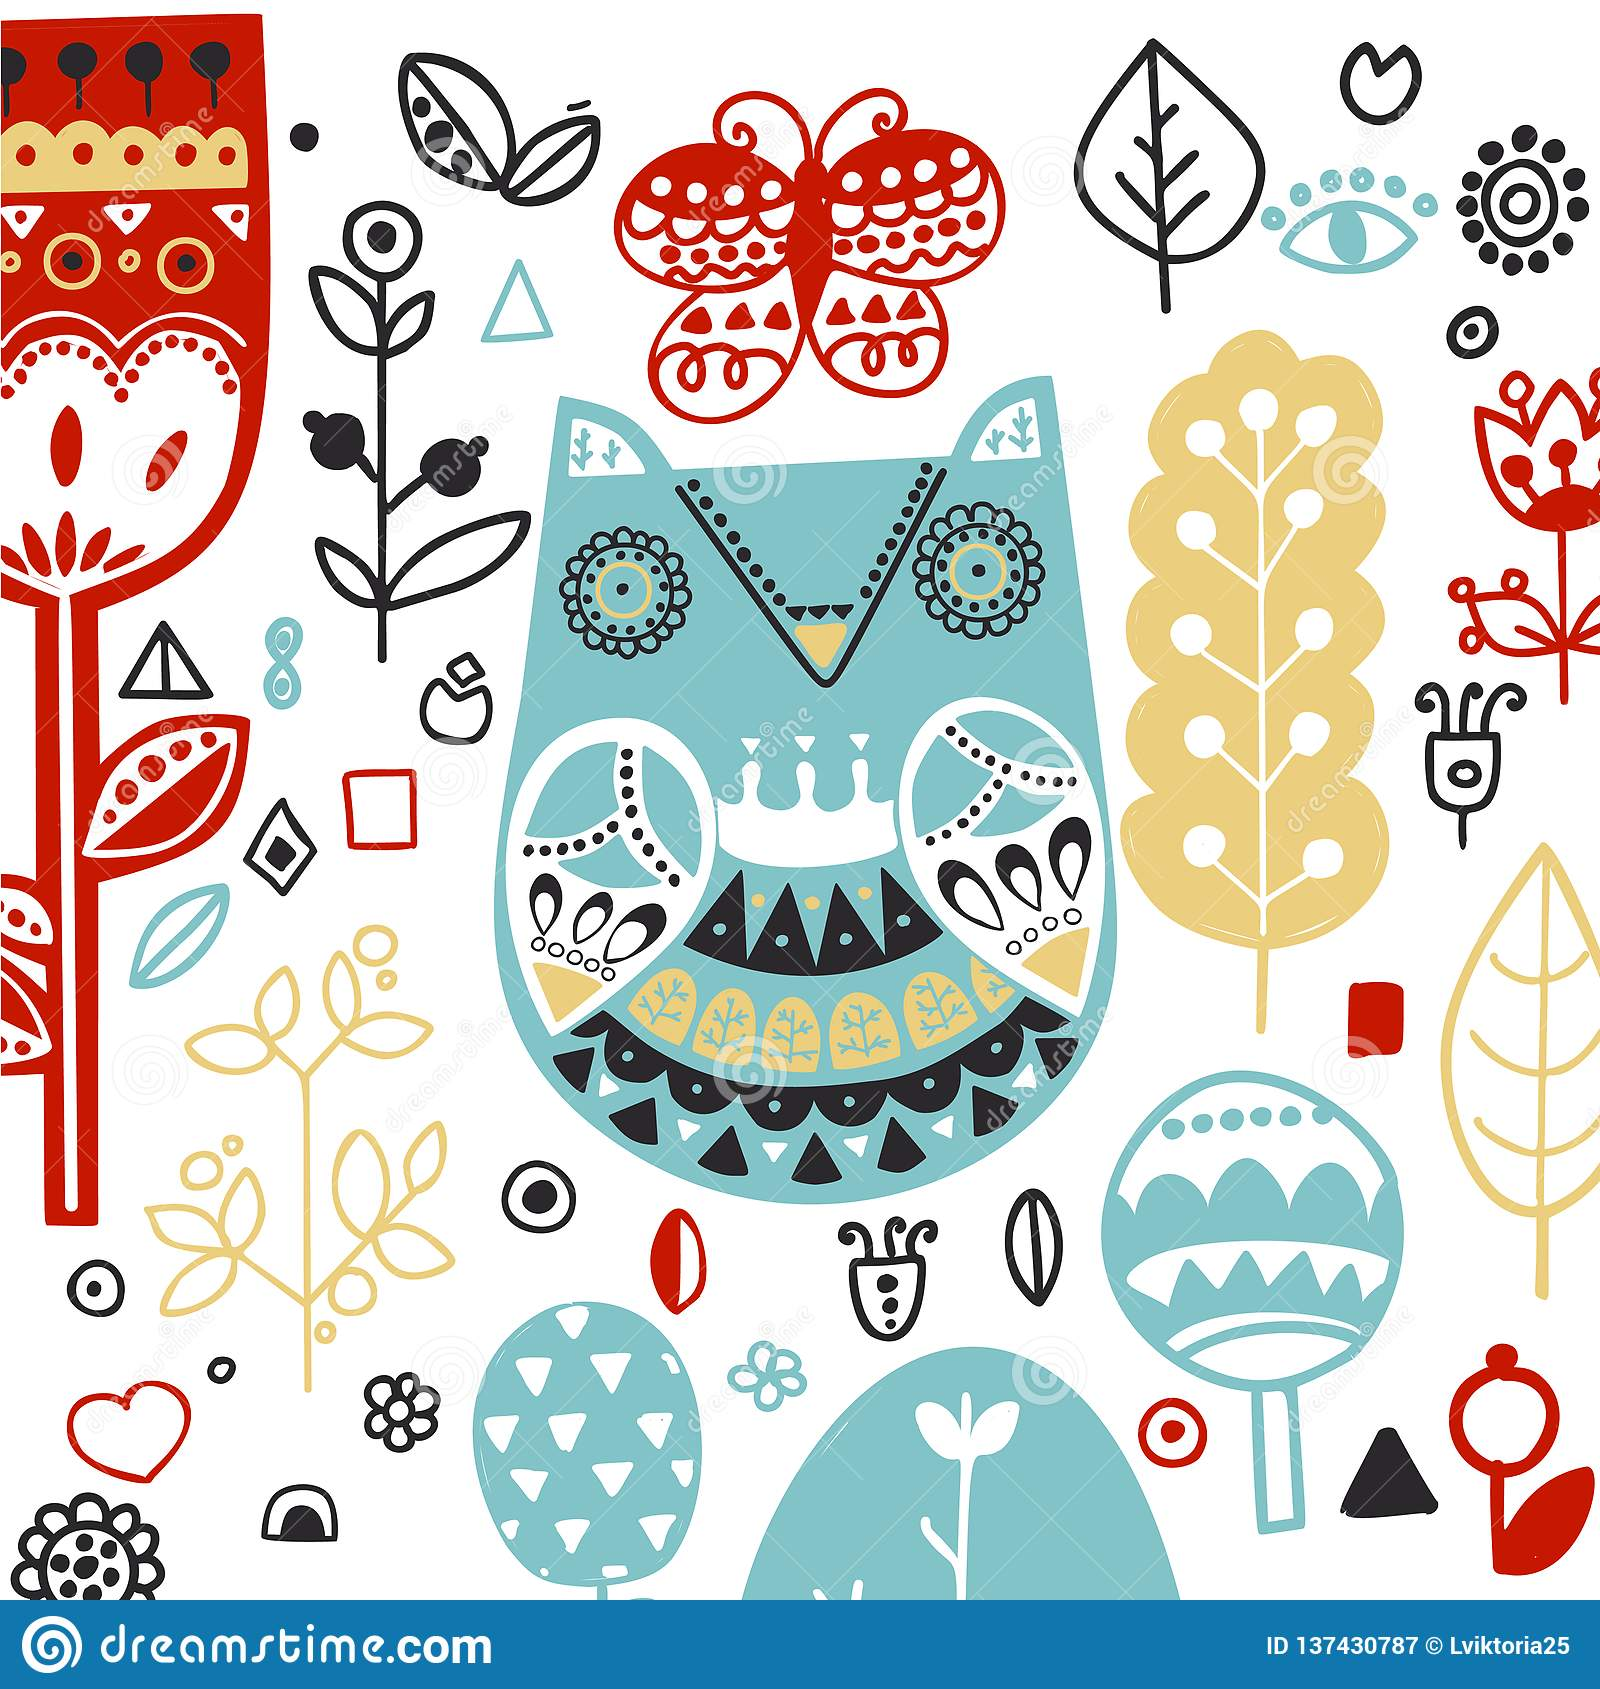 Doodle style Ornamental hand drawn owl illustration